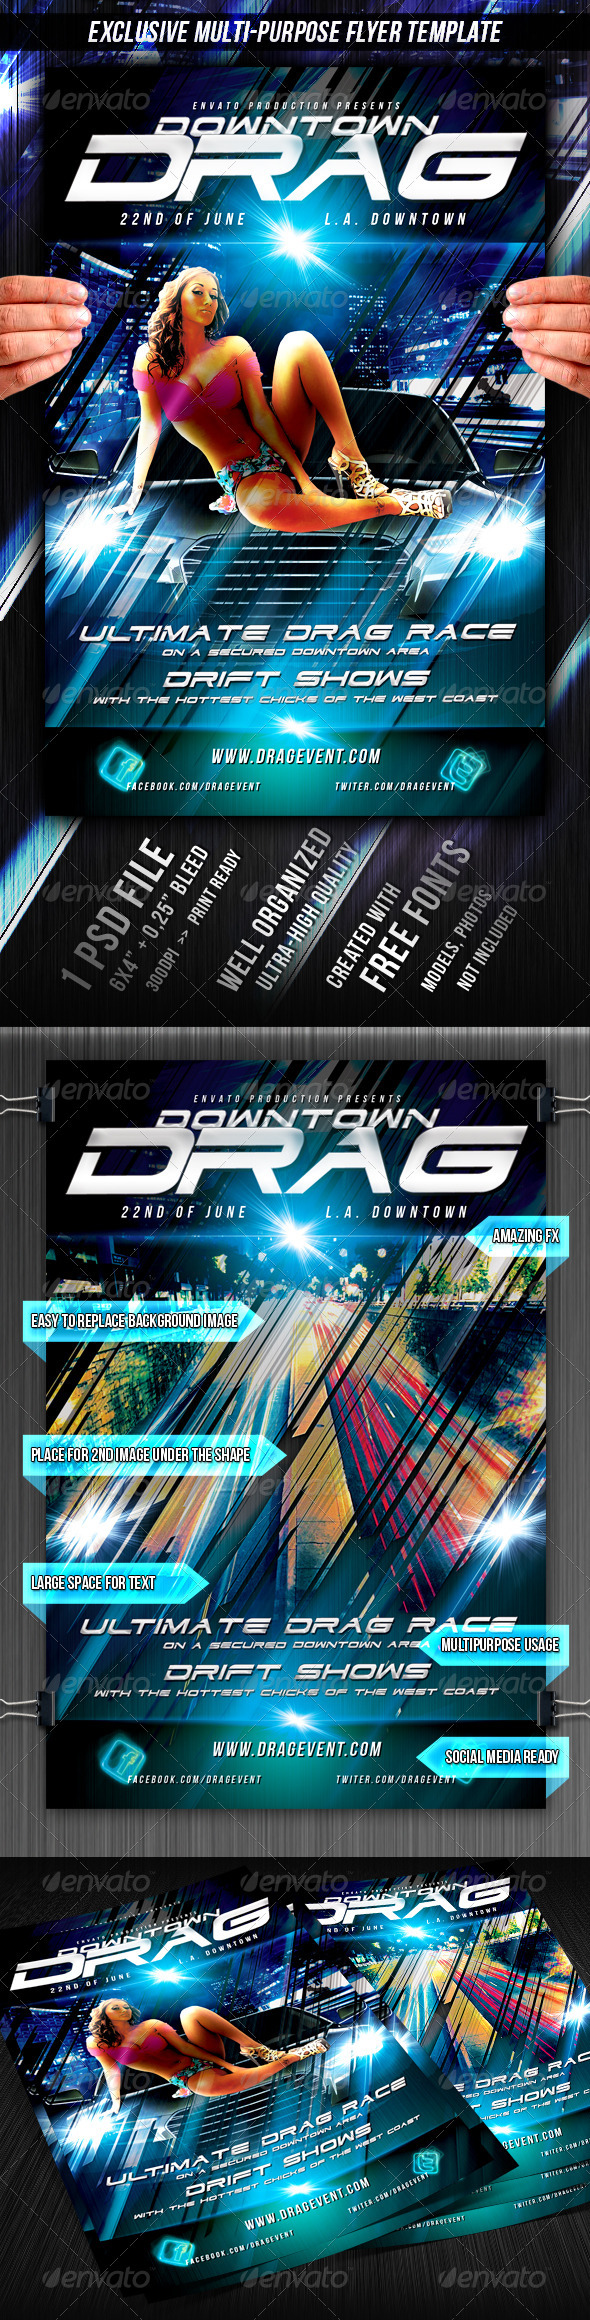 Downtown Drag Flyer Template - Miscellaneous Events